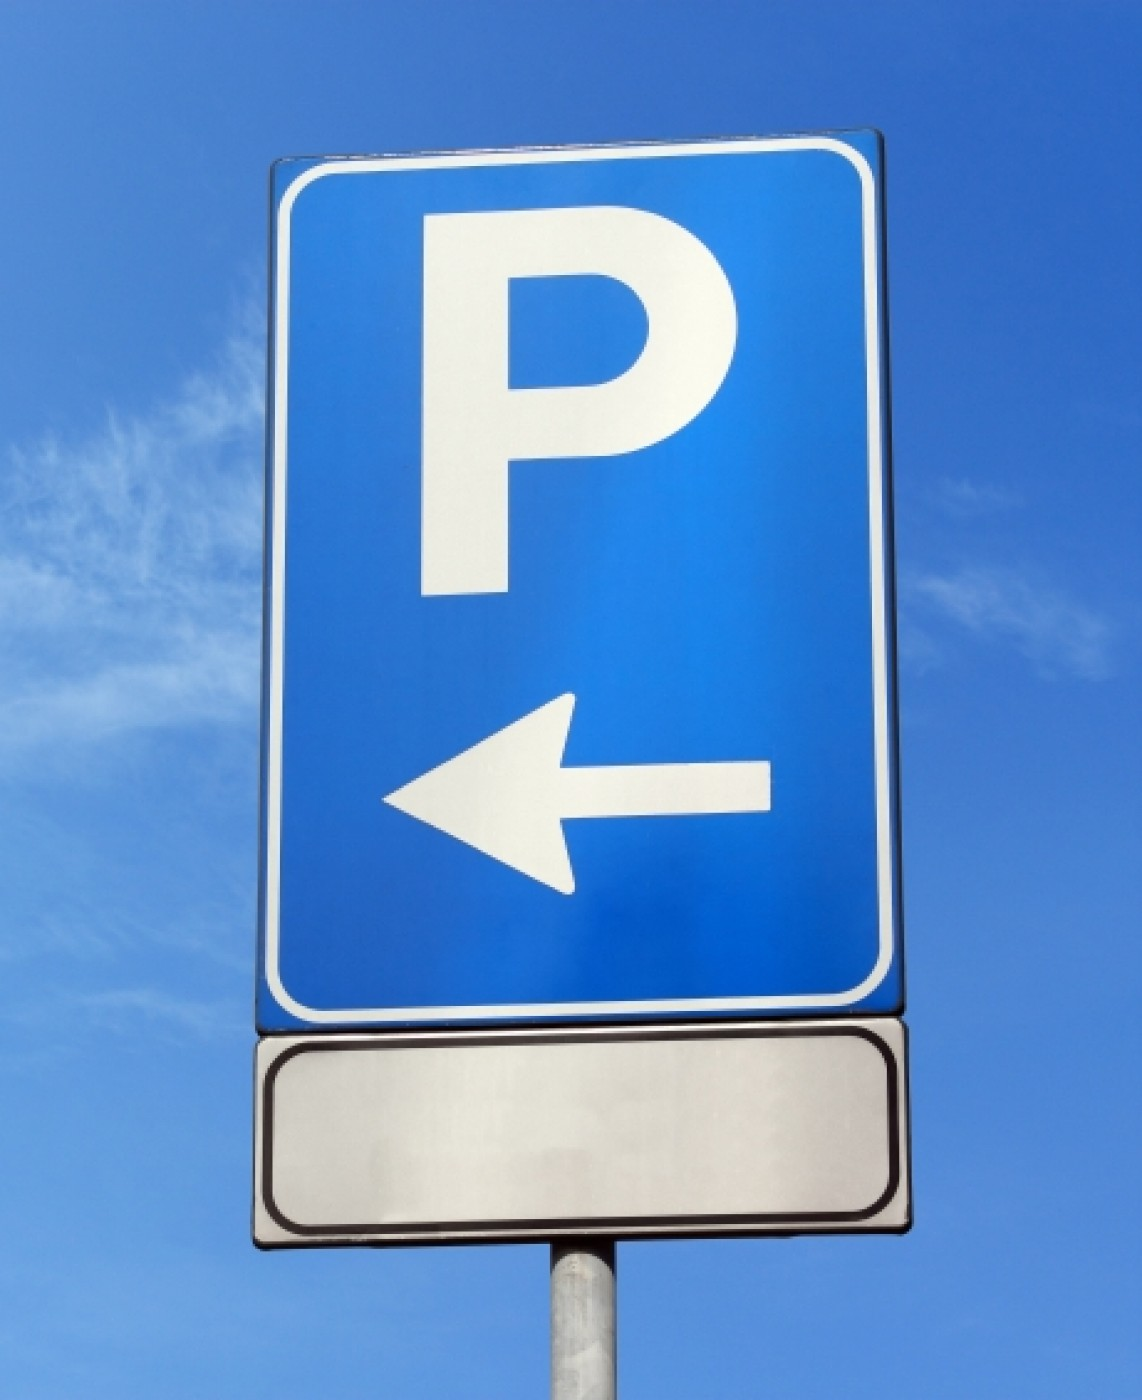 Alicante-Elche airport parking with We Park ALC